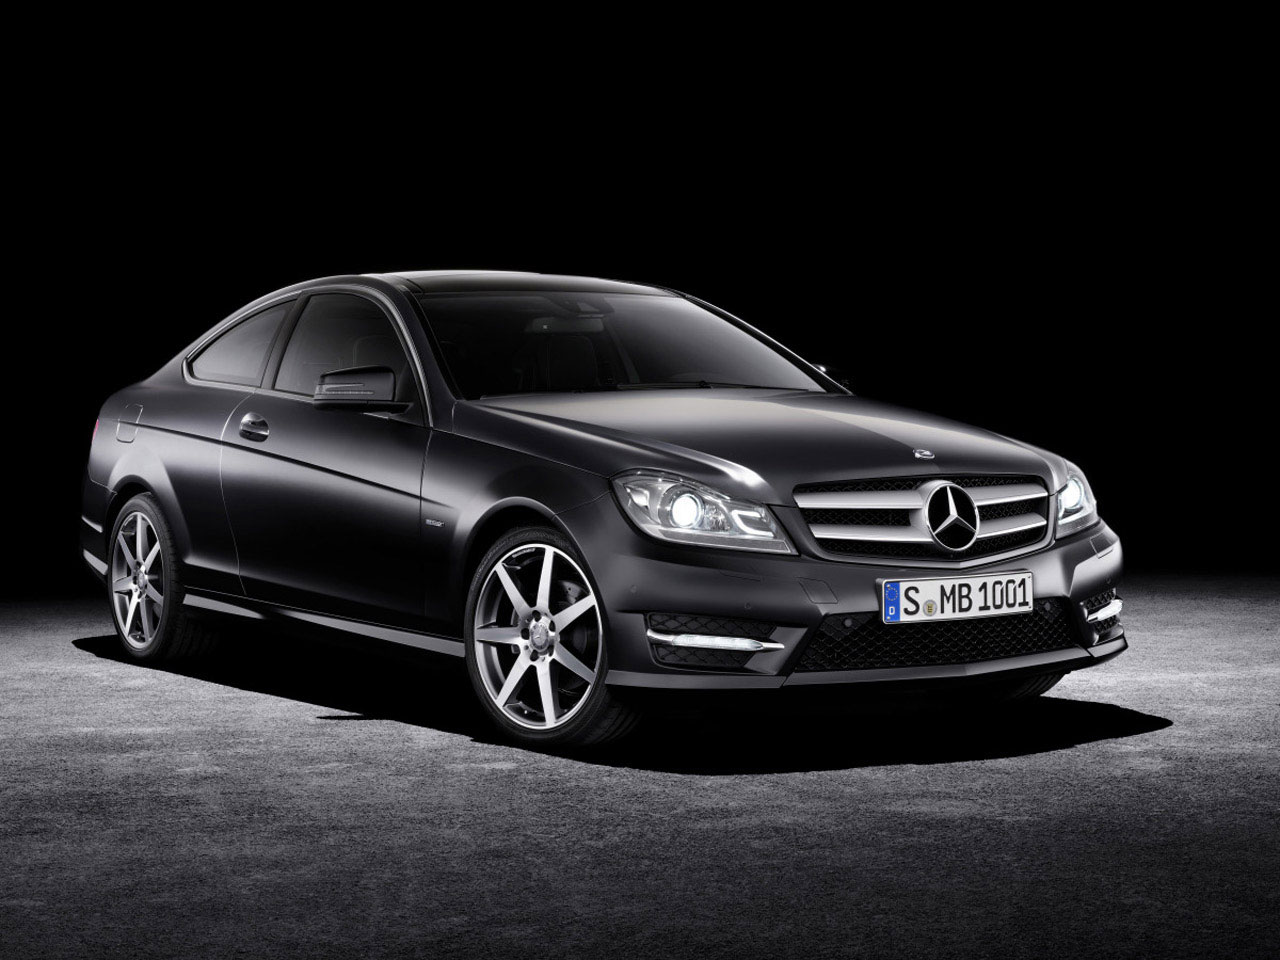 2012 mercedes benz c class coupe officially revealed extravaganzi - Mercedes c class coupe used ...